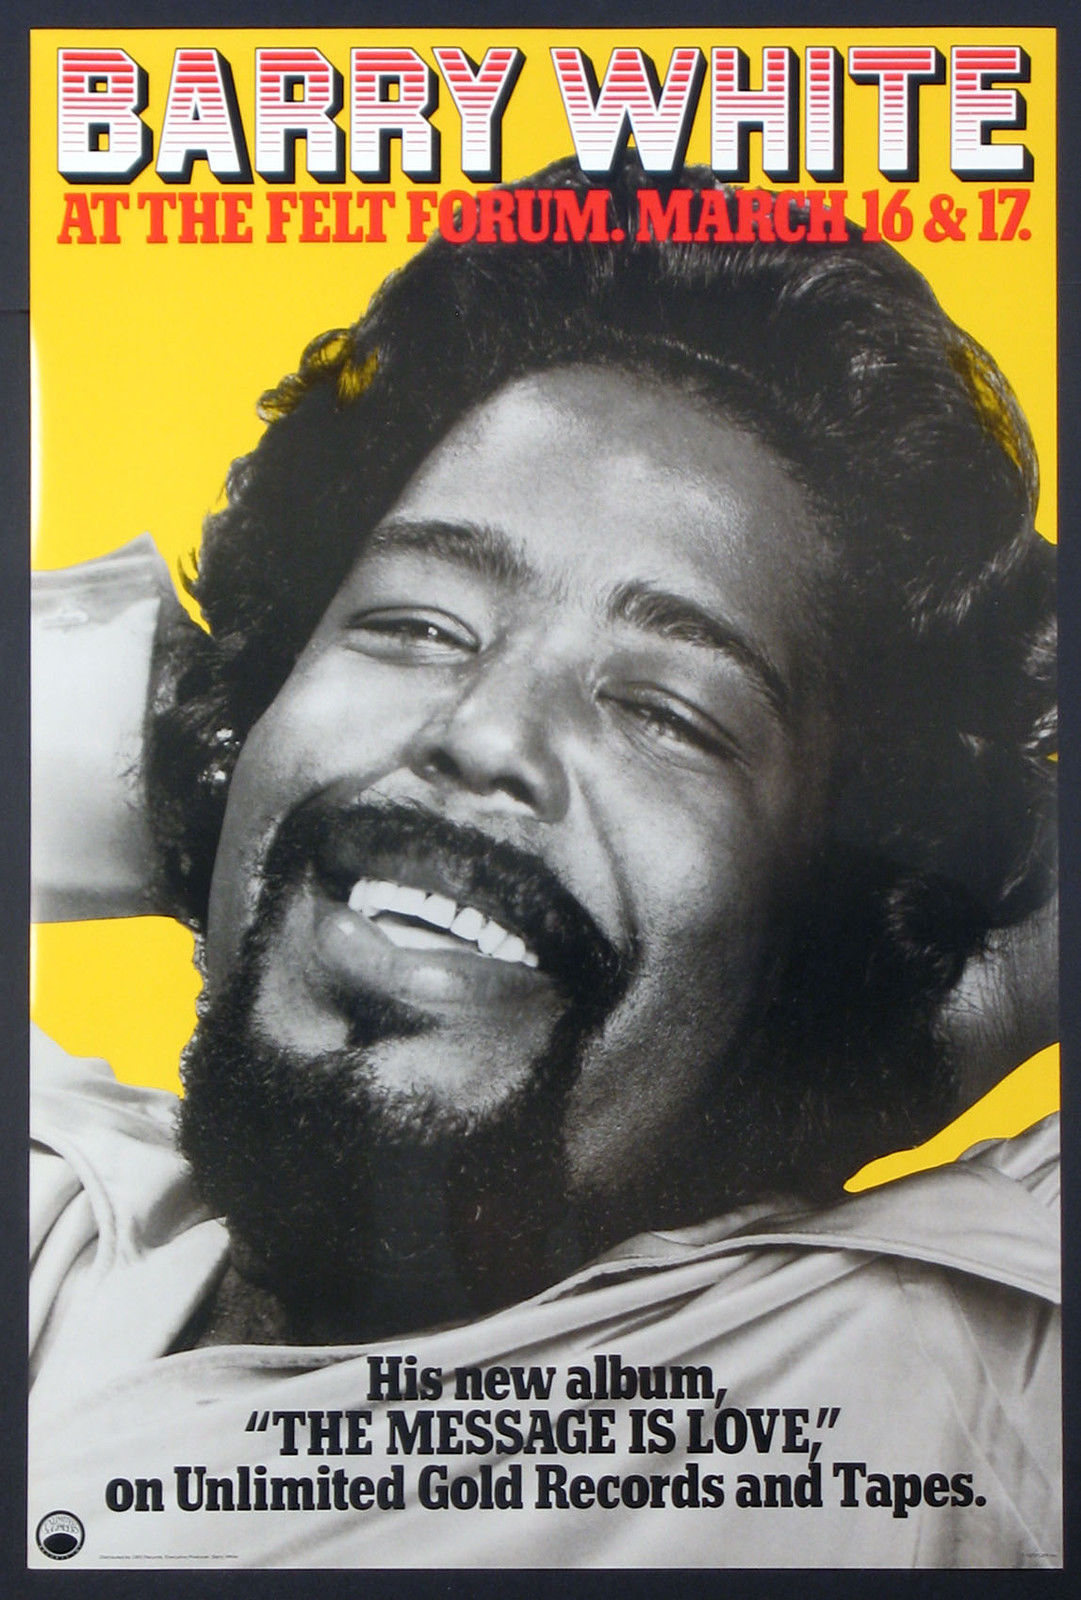 A poster for Barry White live at The Fleet Forum in New York.